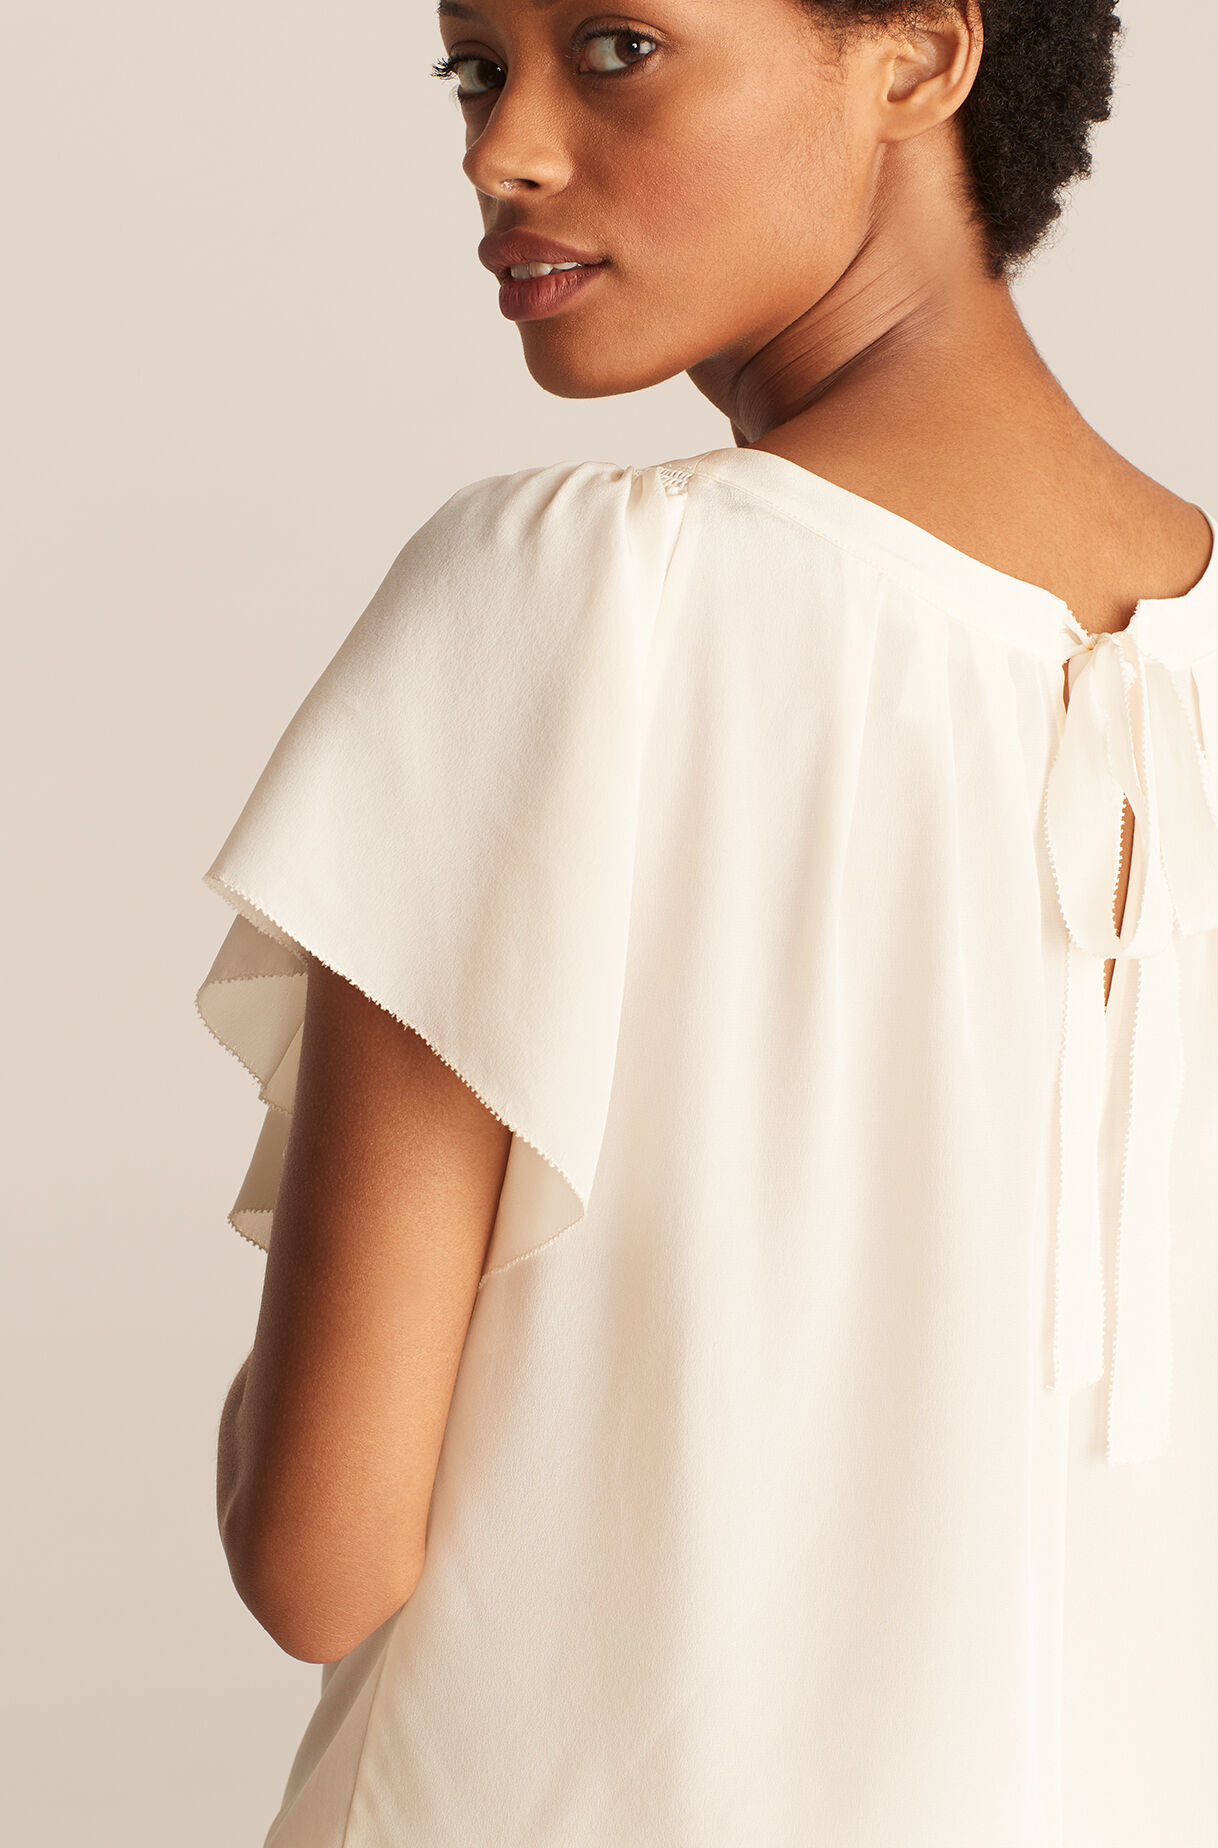 Ruched Round Neck Blouse-NewIvory